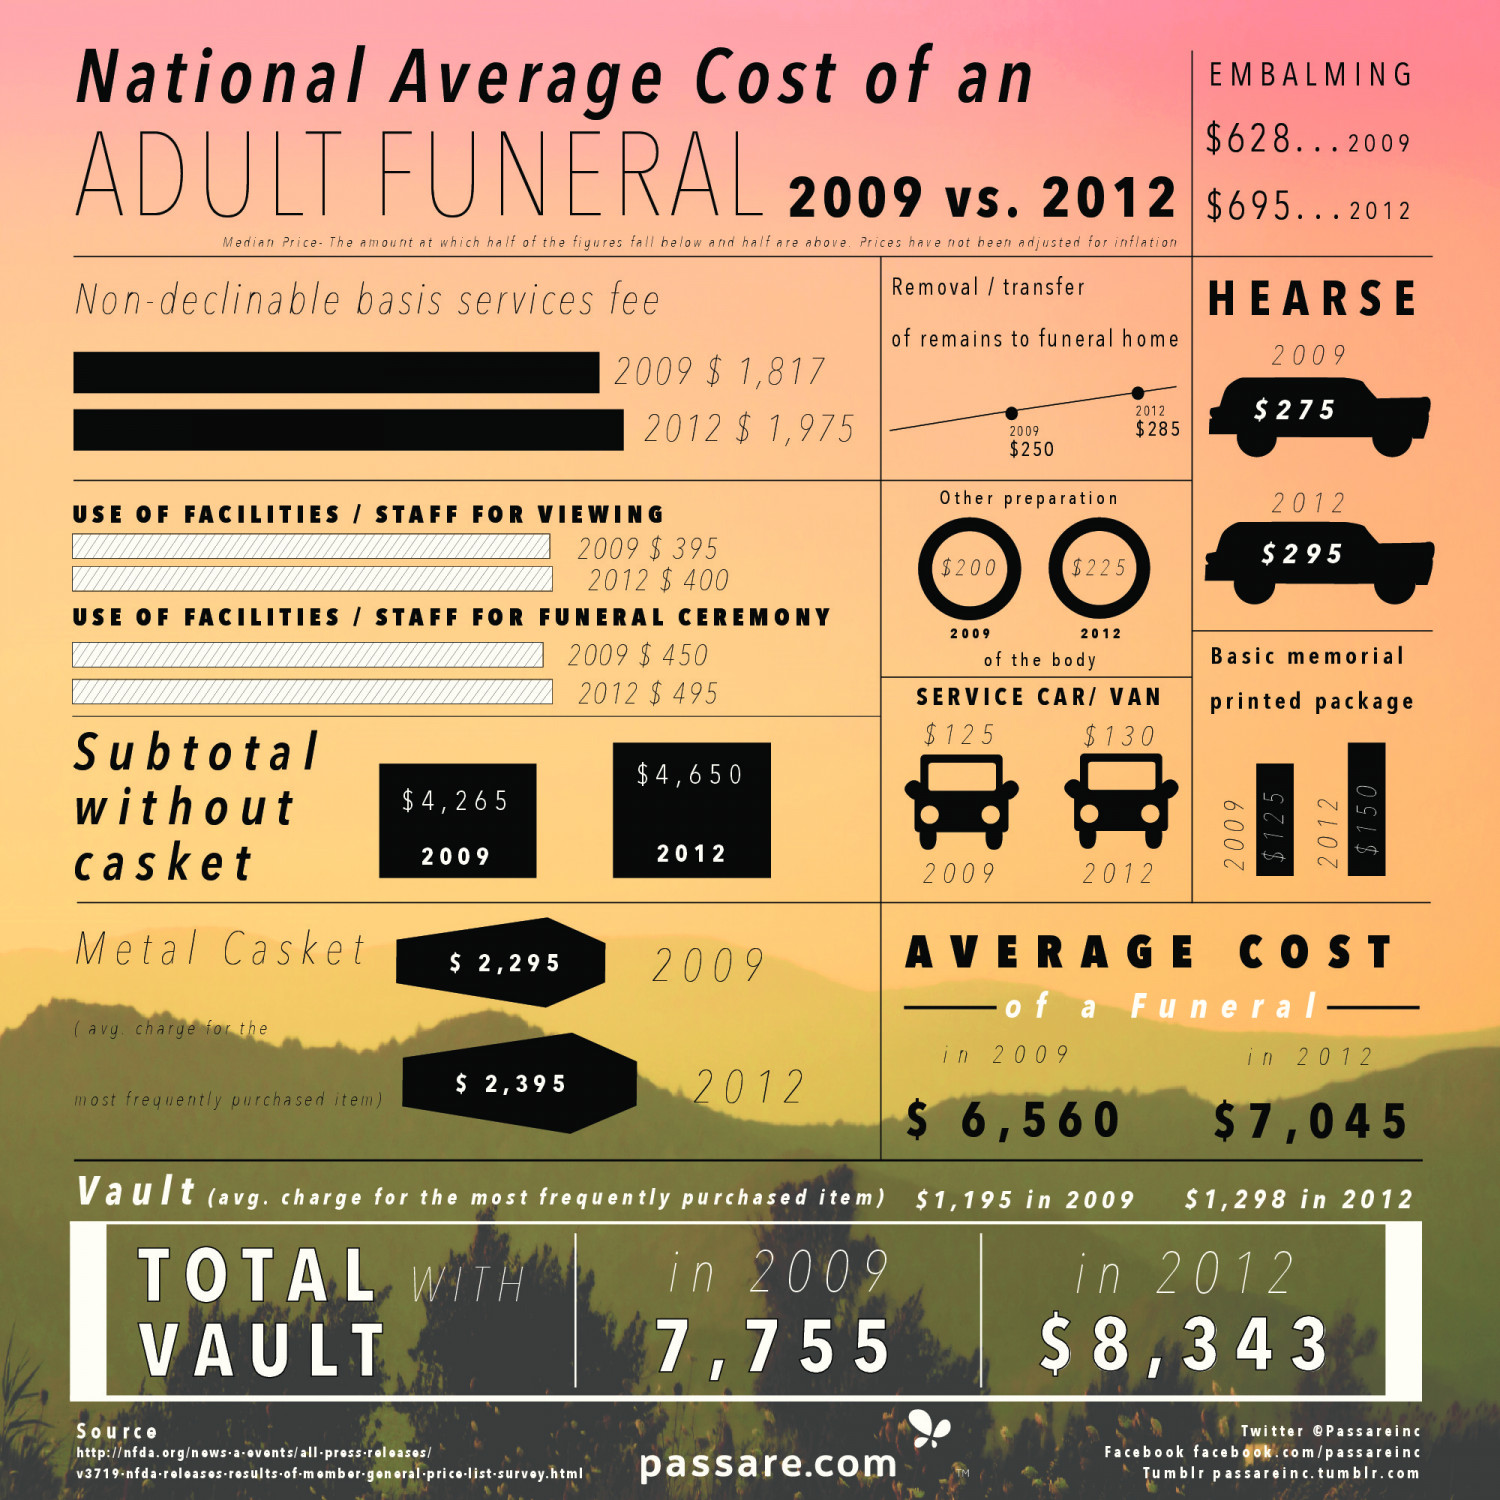 National Average Cost Of An Adult Funeral In The US (2009 vs. 2012) Infographic